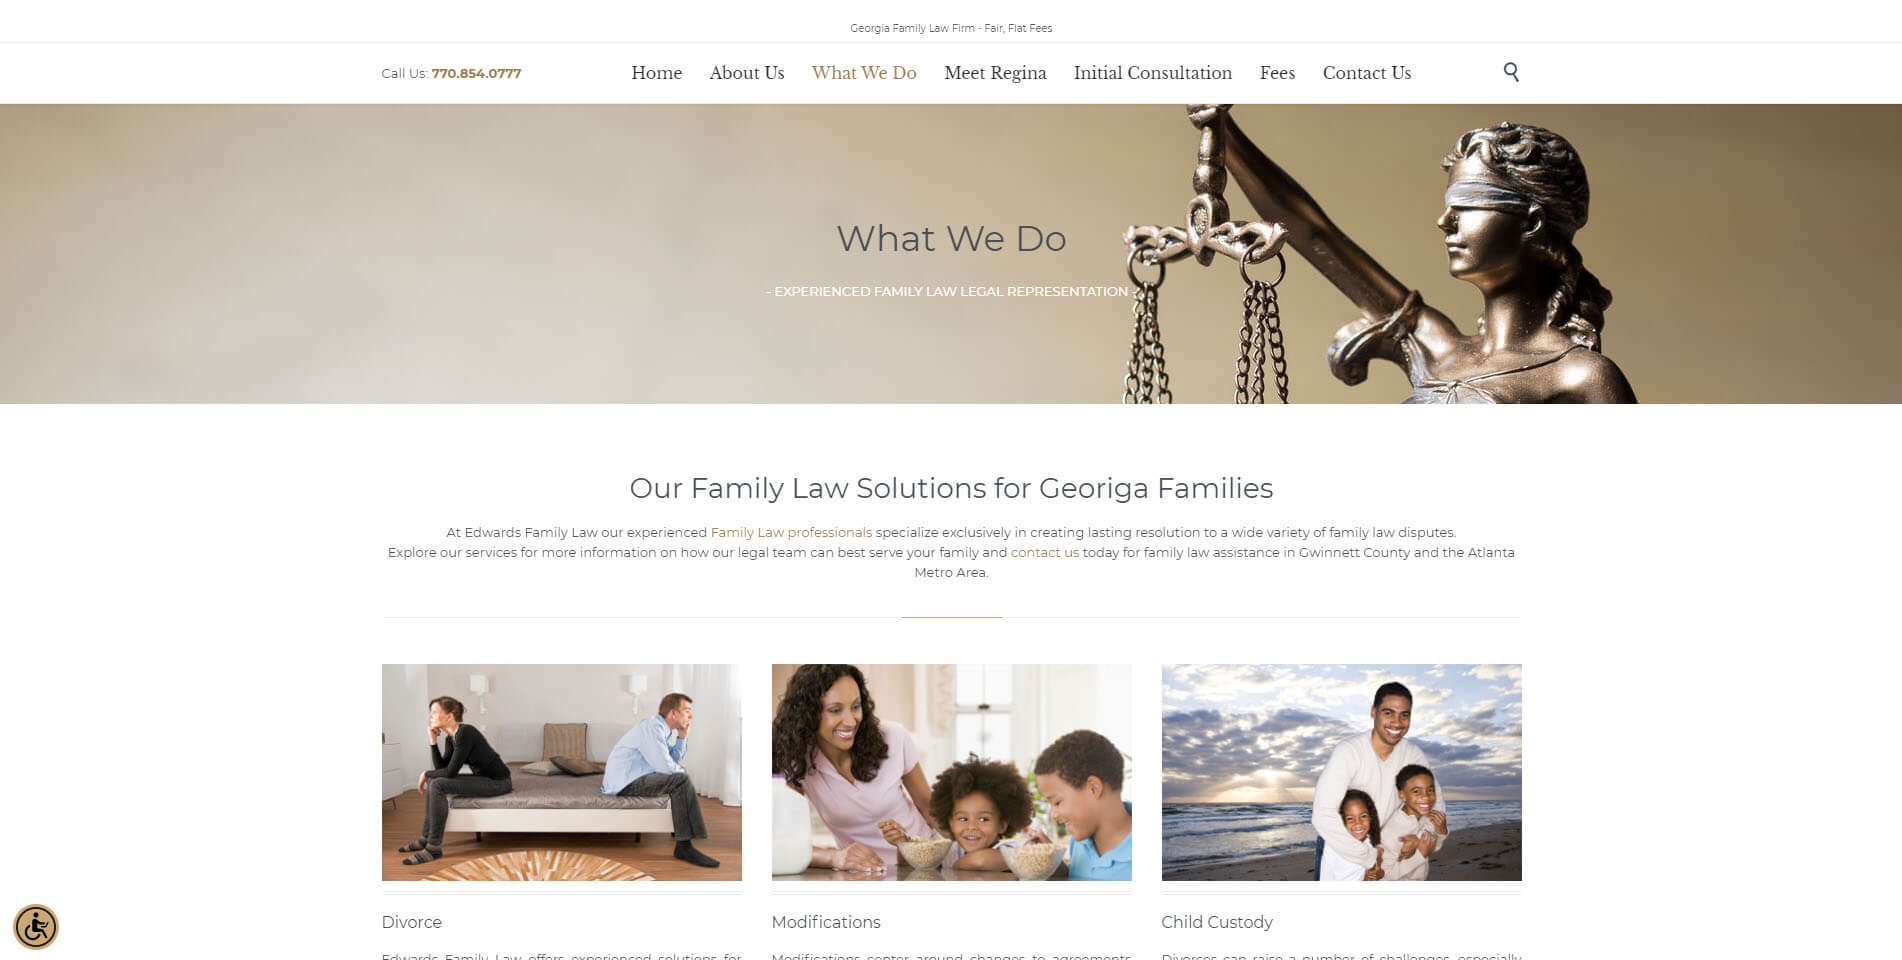 An image of the practice areas of Edwards Divorce Law, website created by Not Fade Away Marketing